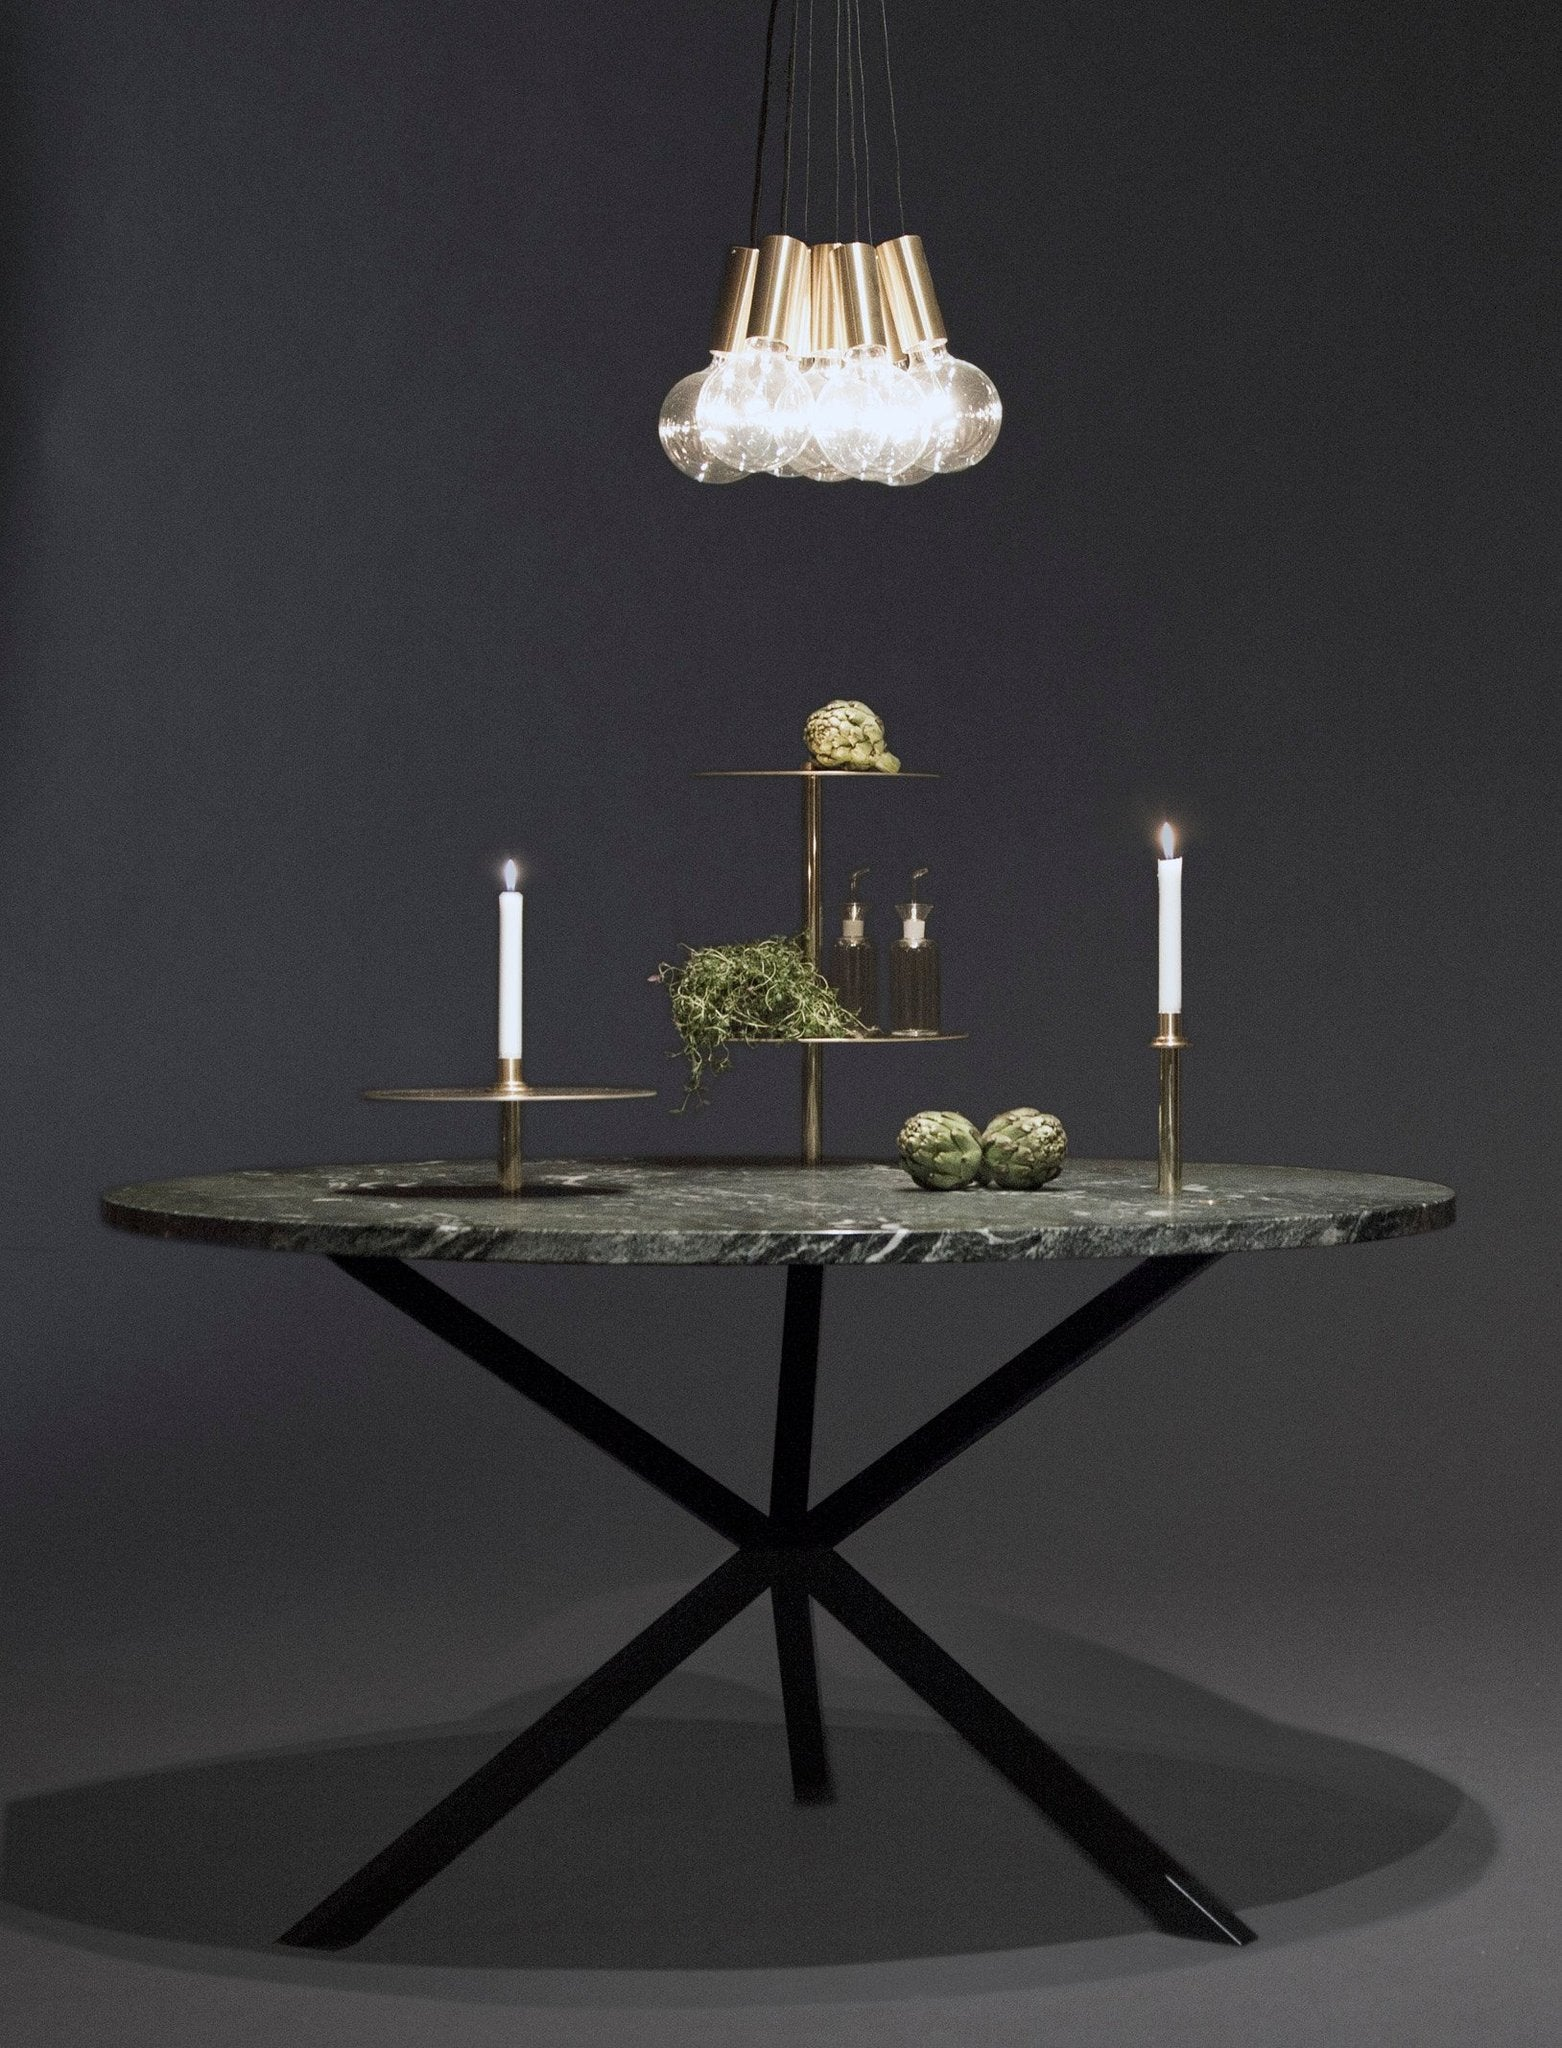 NEB Candlestick with Tray 01